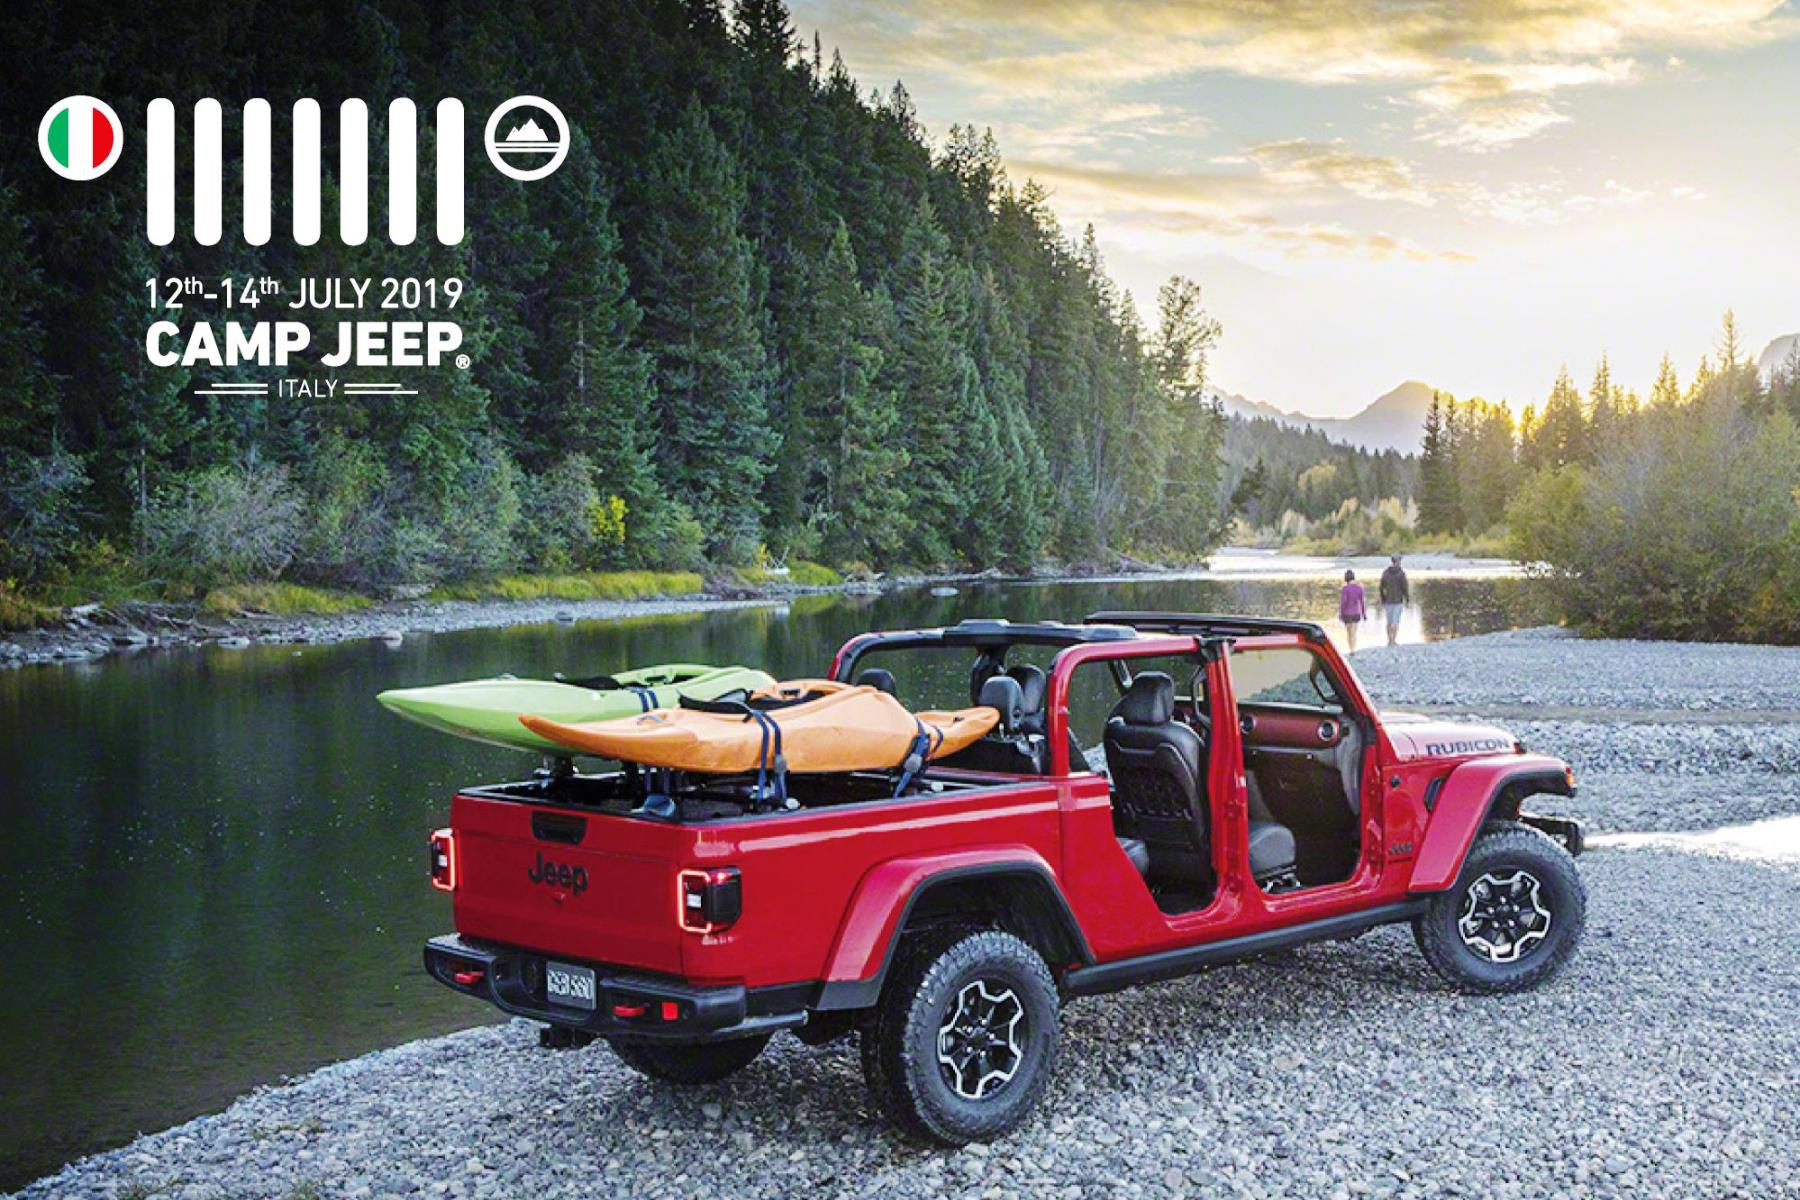 Camp Jeep 2019 and the Gladiator